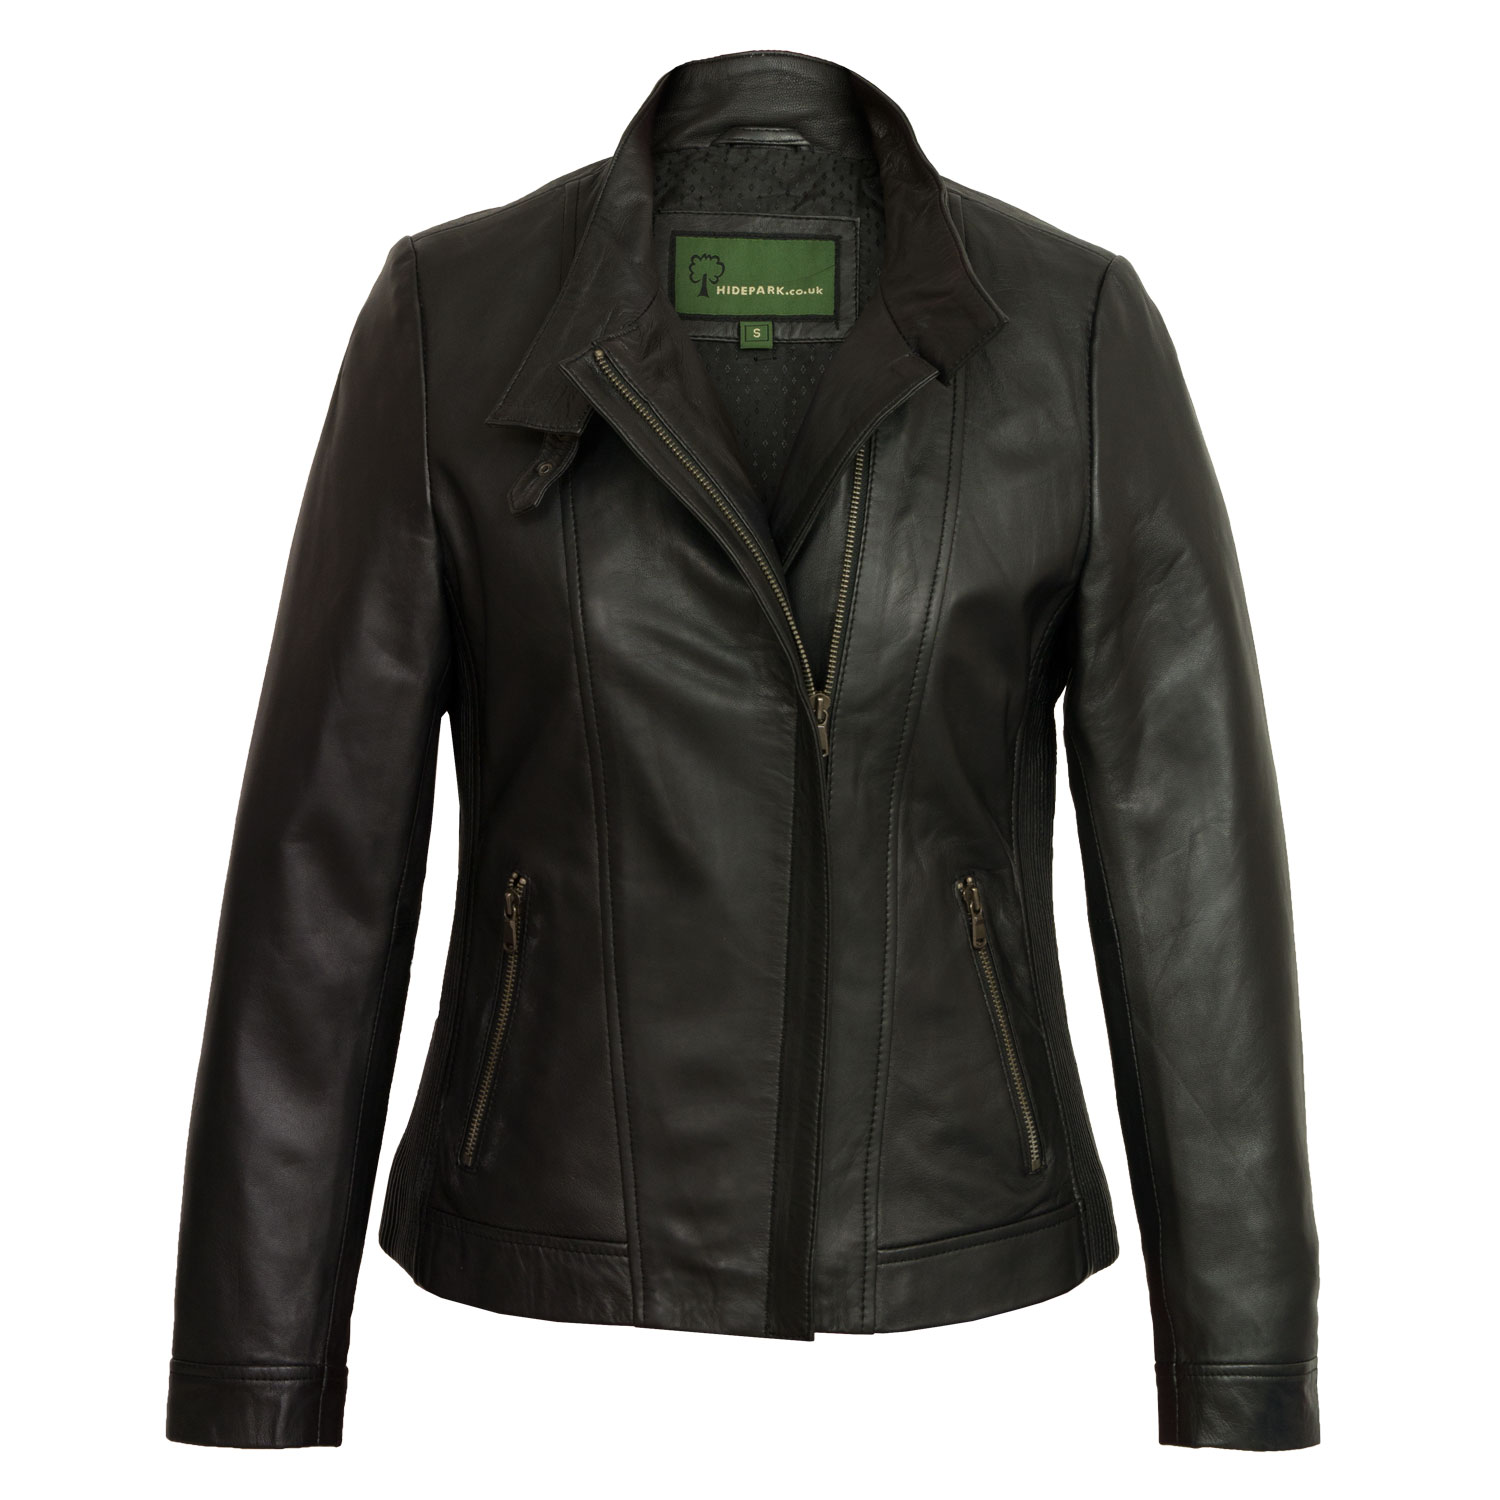 Women's Black Leather Jacket: Elsie